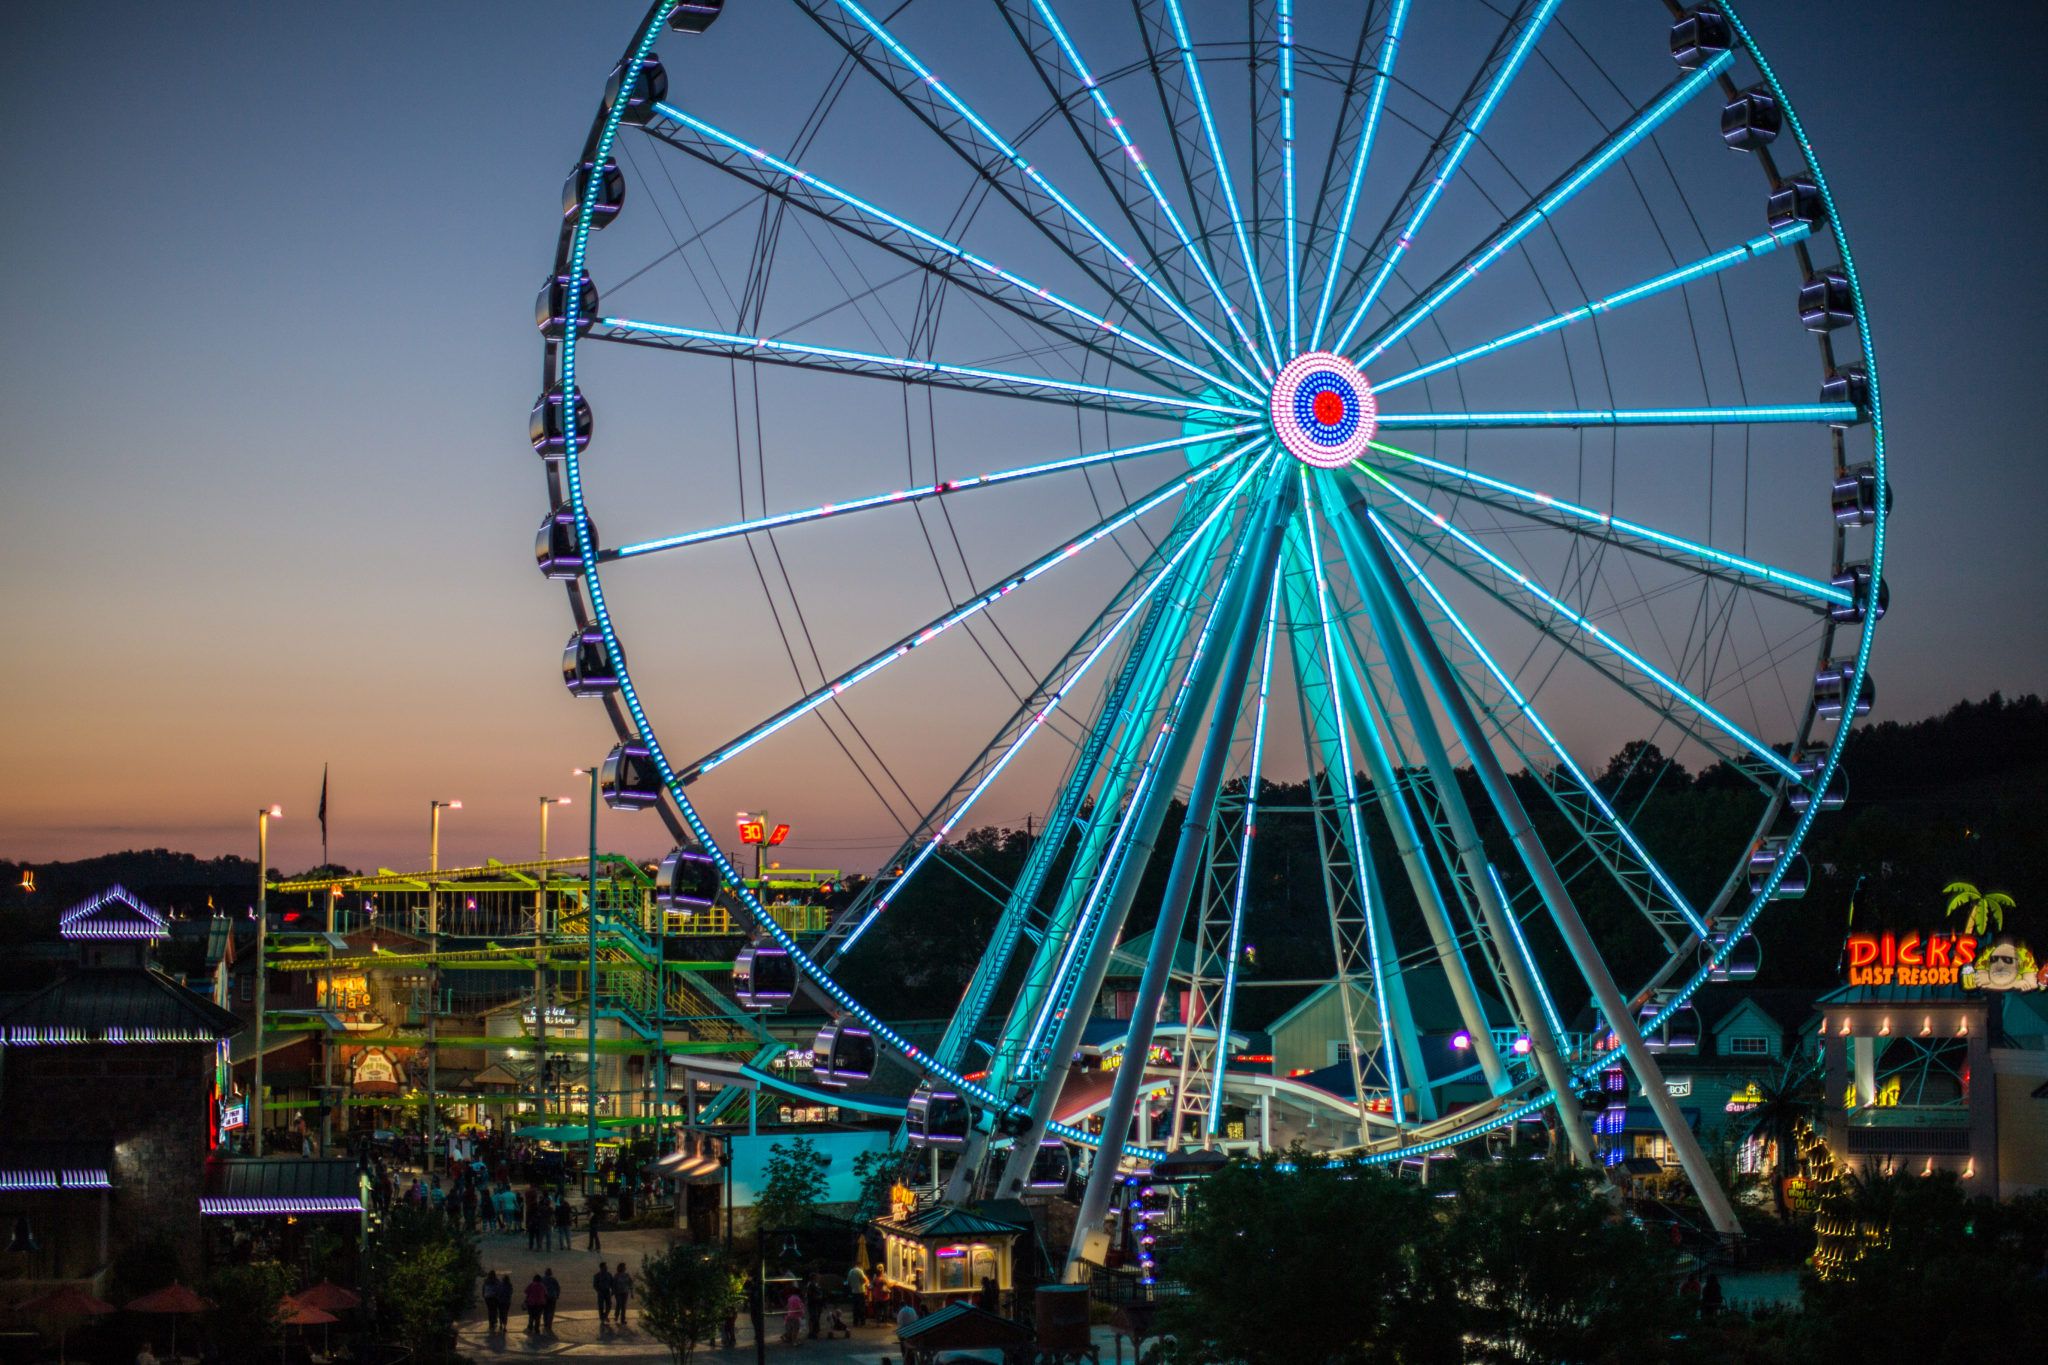 Image Gallery - The Island in Pigeon Forge, Tennessee